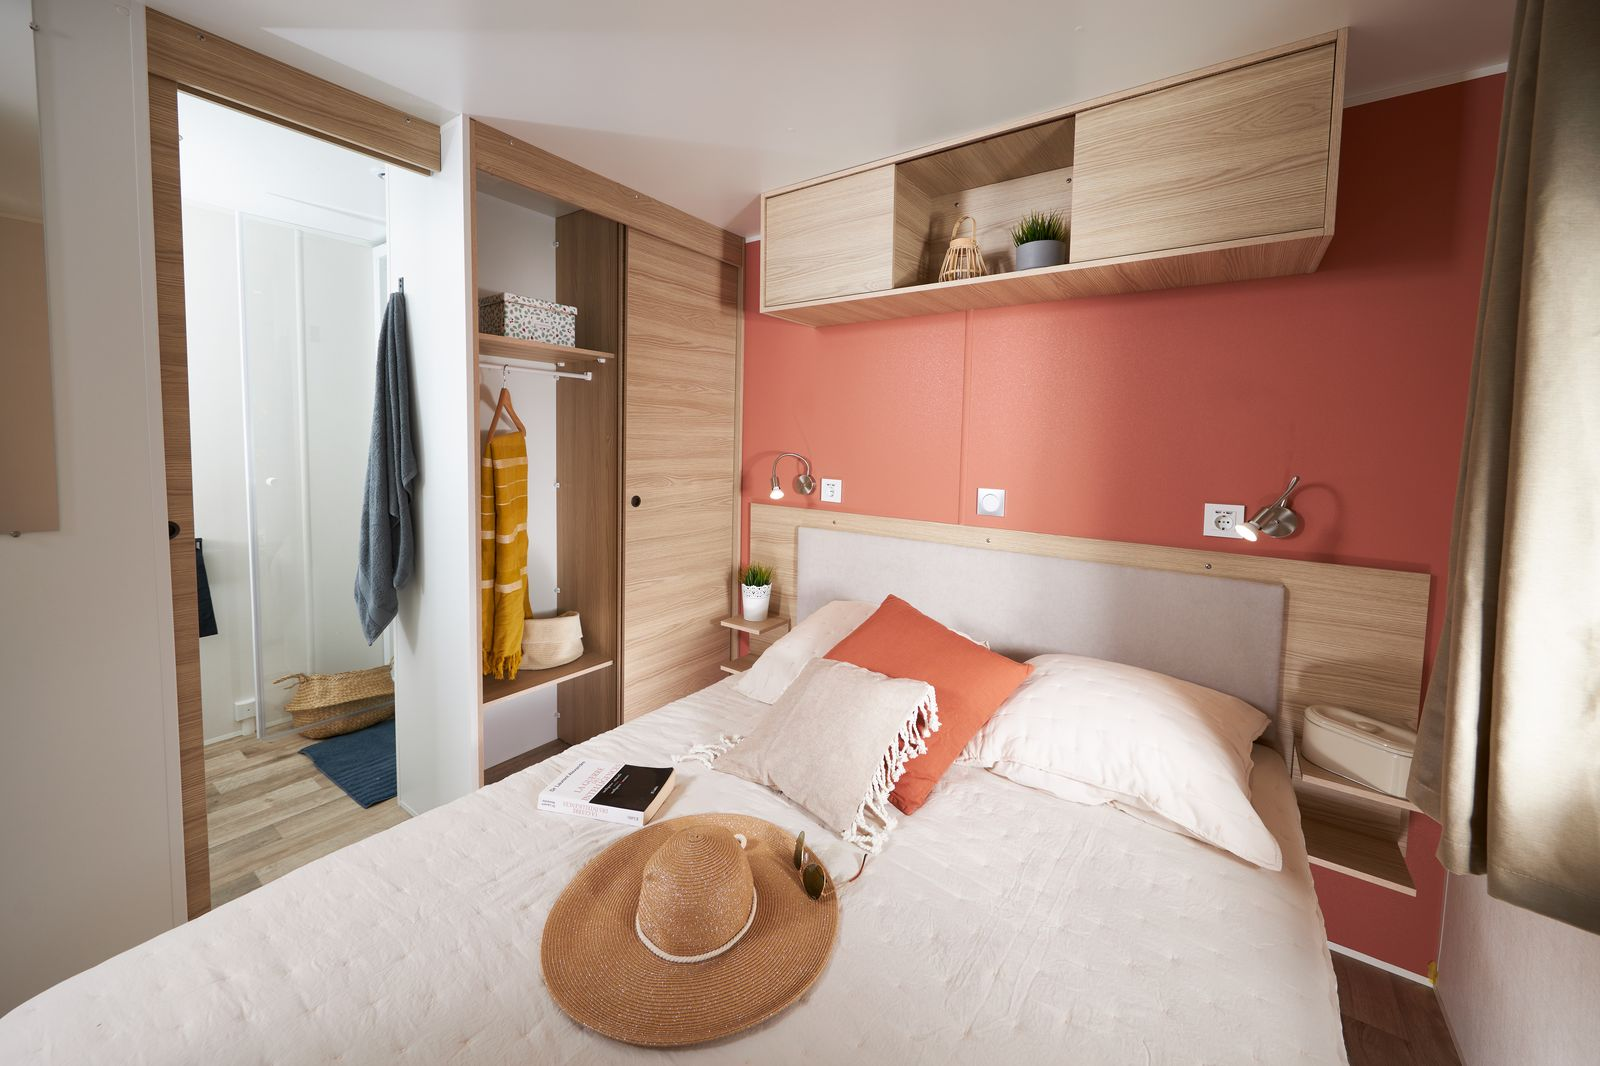 residence trigano-passion-3chambres-2sdb-chambre-parents-sdb